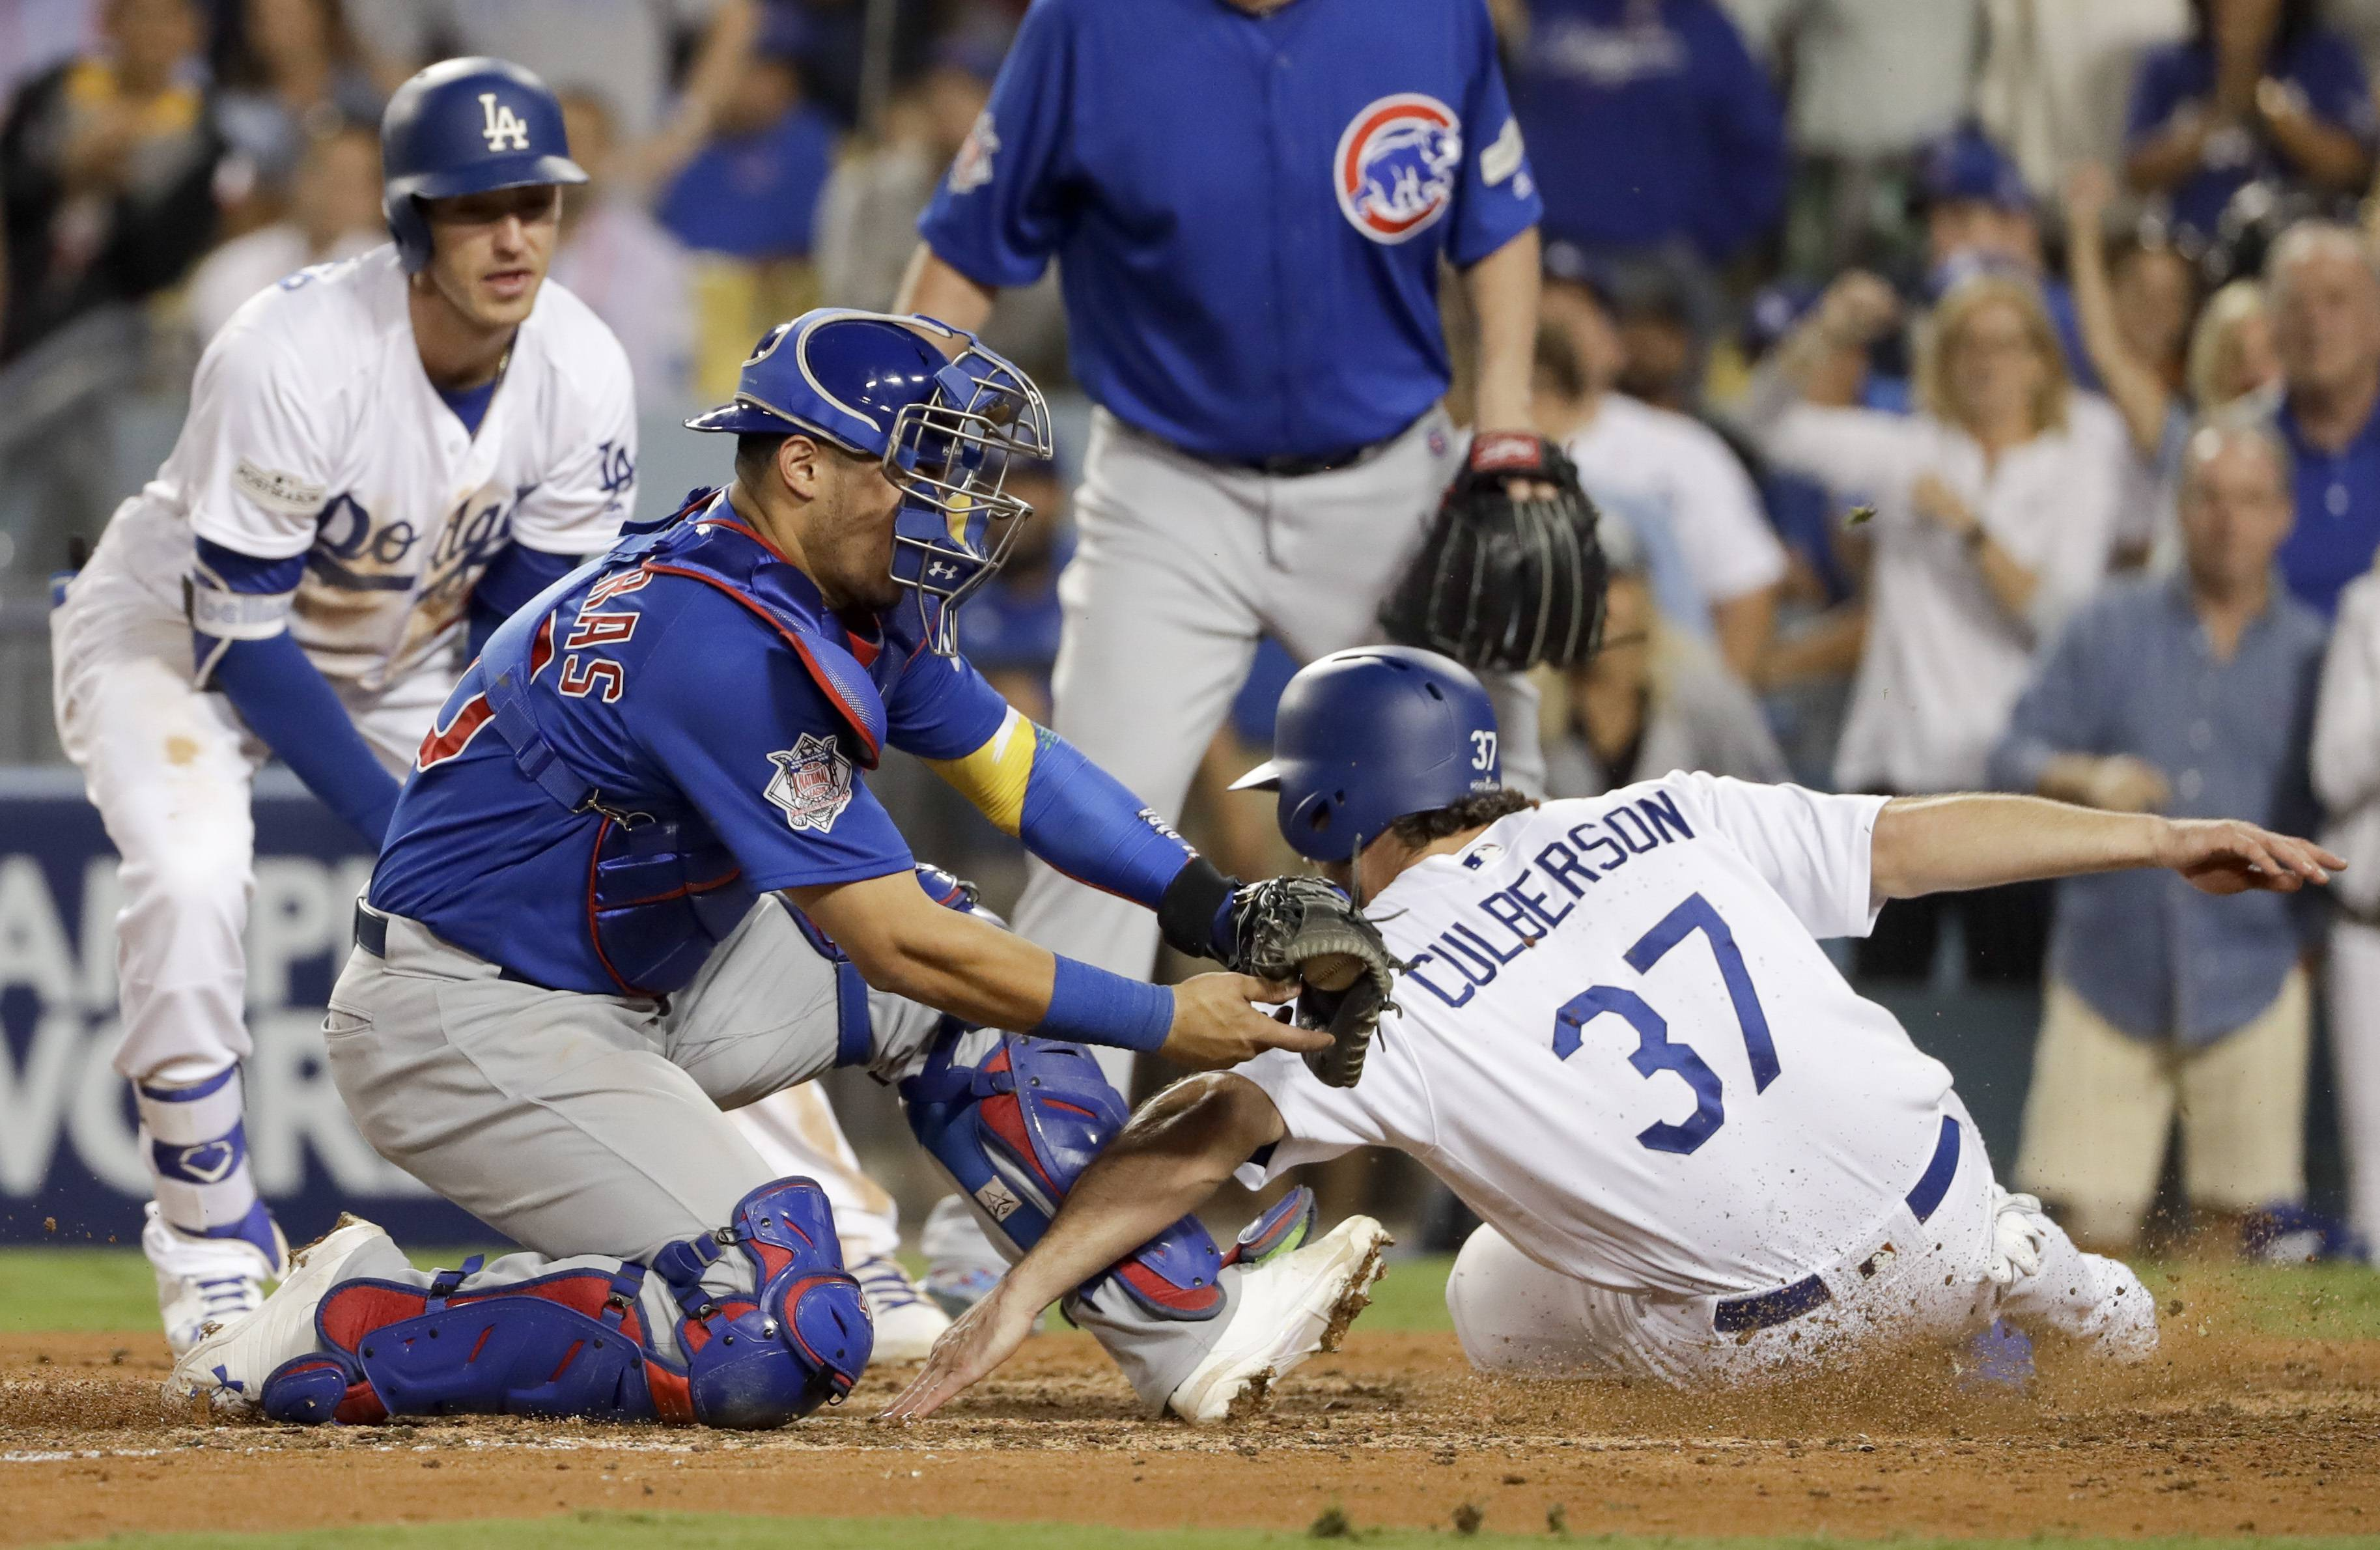 Chicago Cubs lose Game 1 of NLCS to Dodgers 5-2